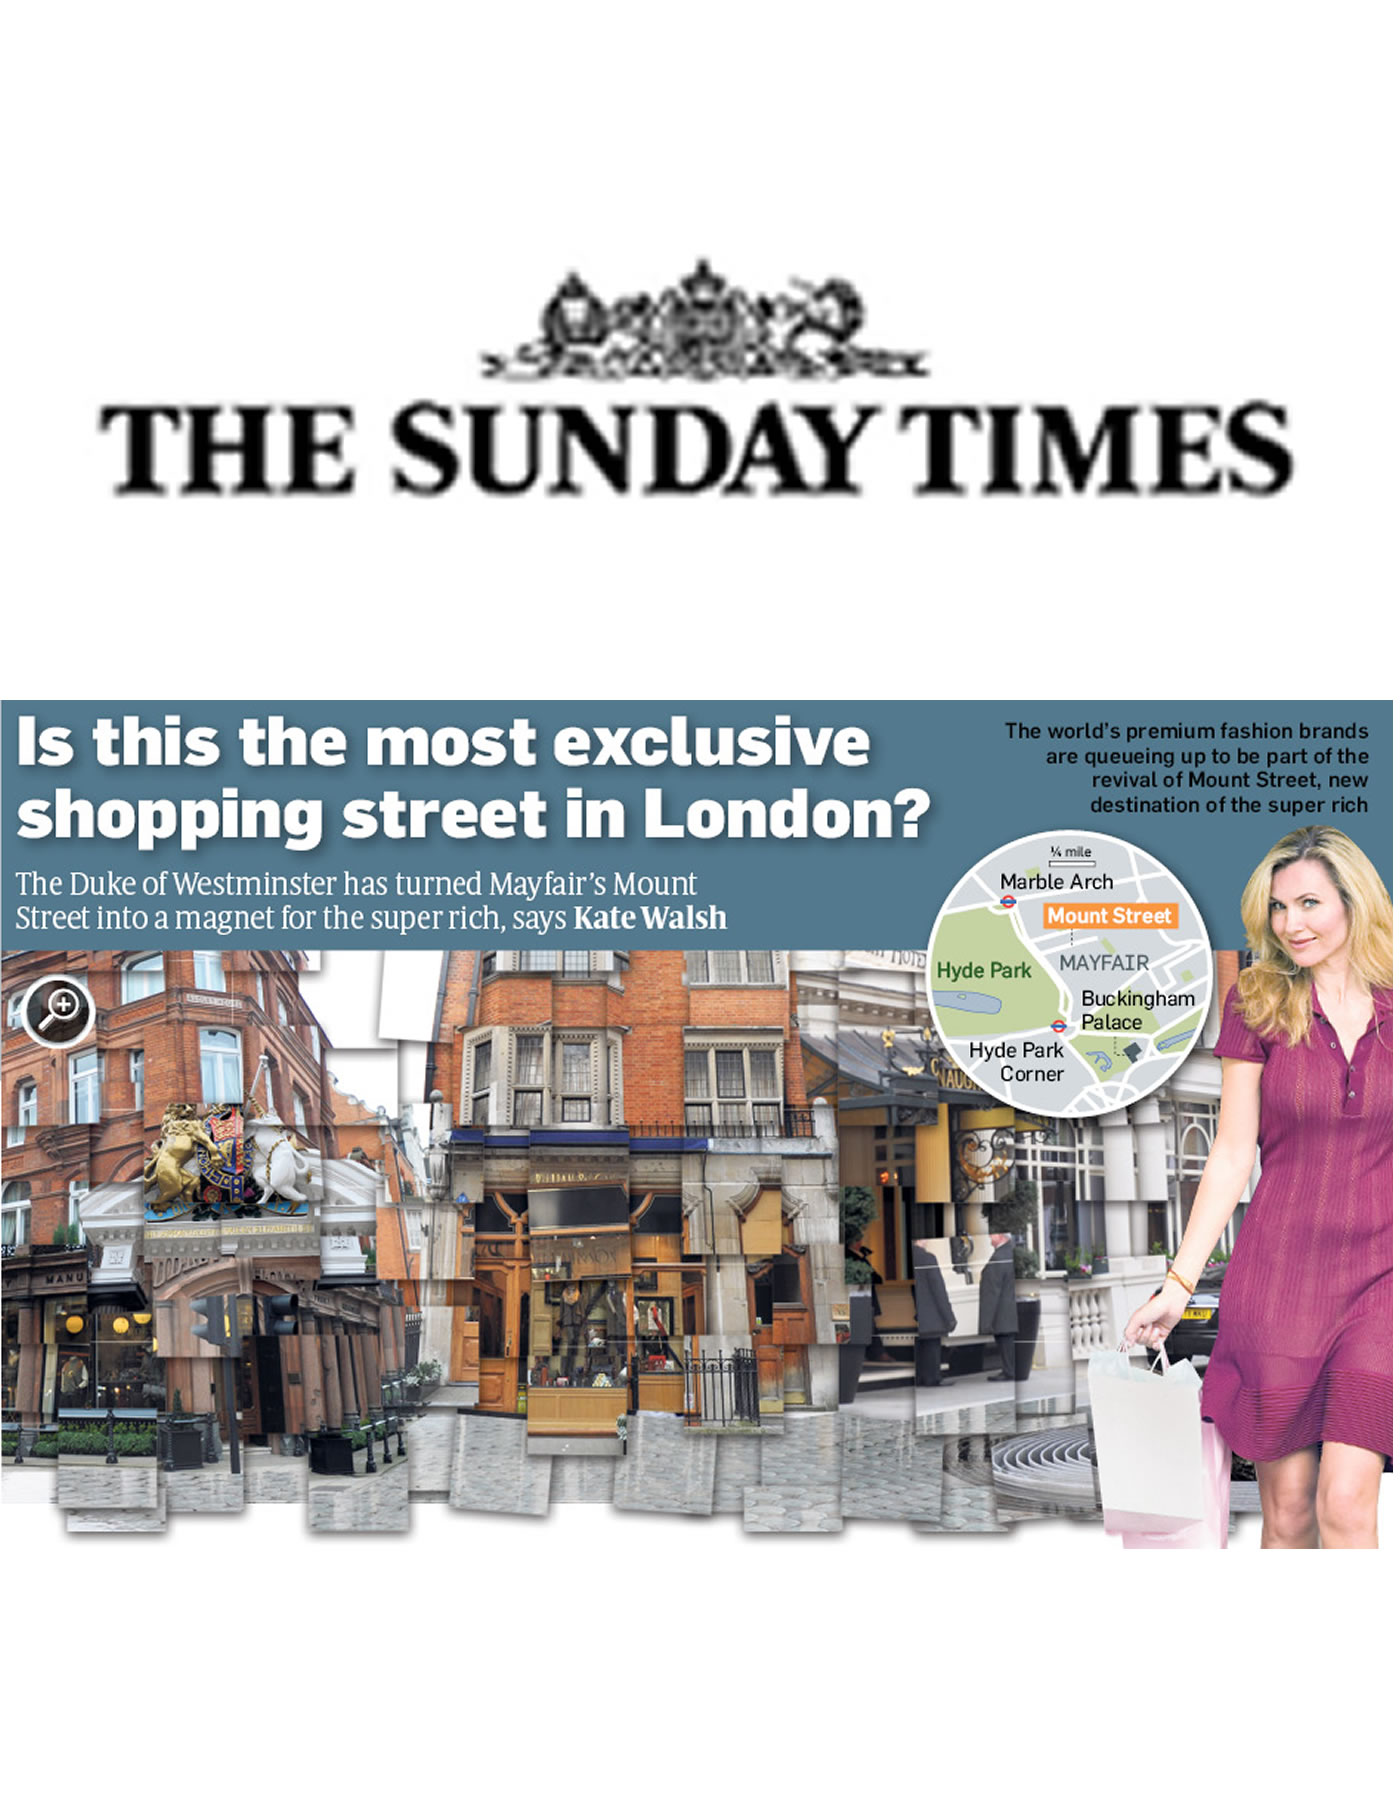 'Is this the most exclusive shopping street in London?' - The Sunday Times on Mark Glenn's Mount Street